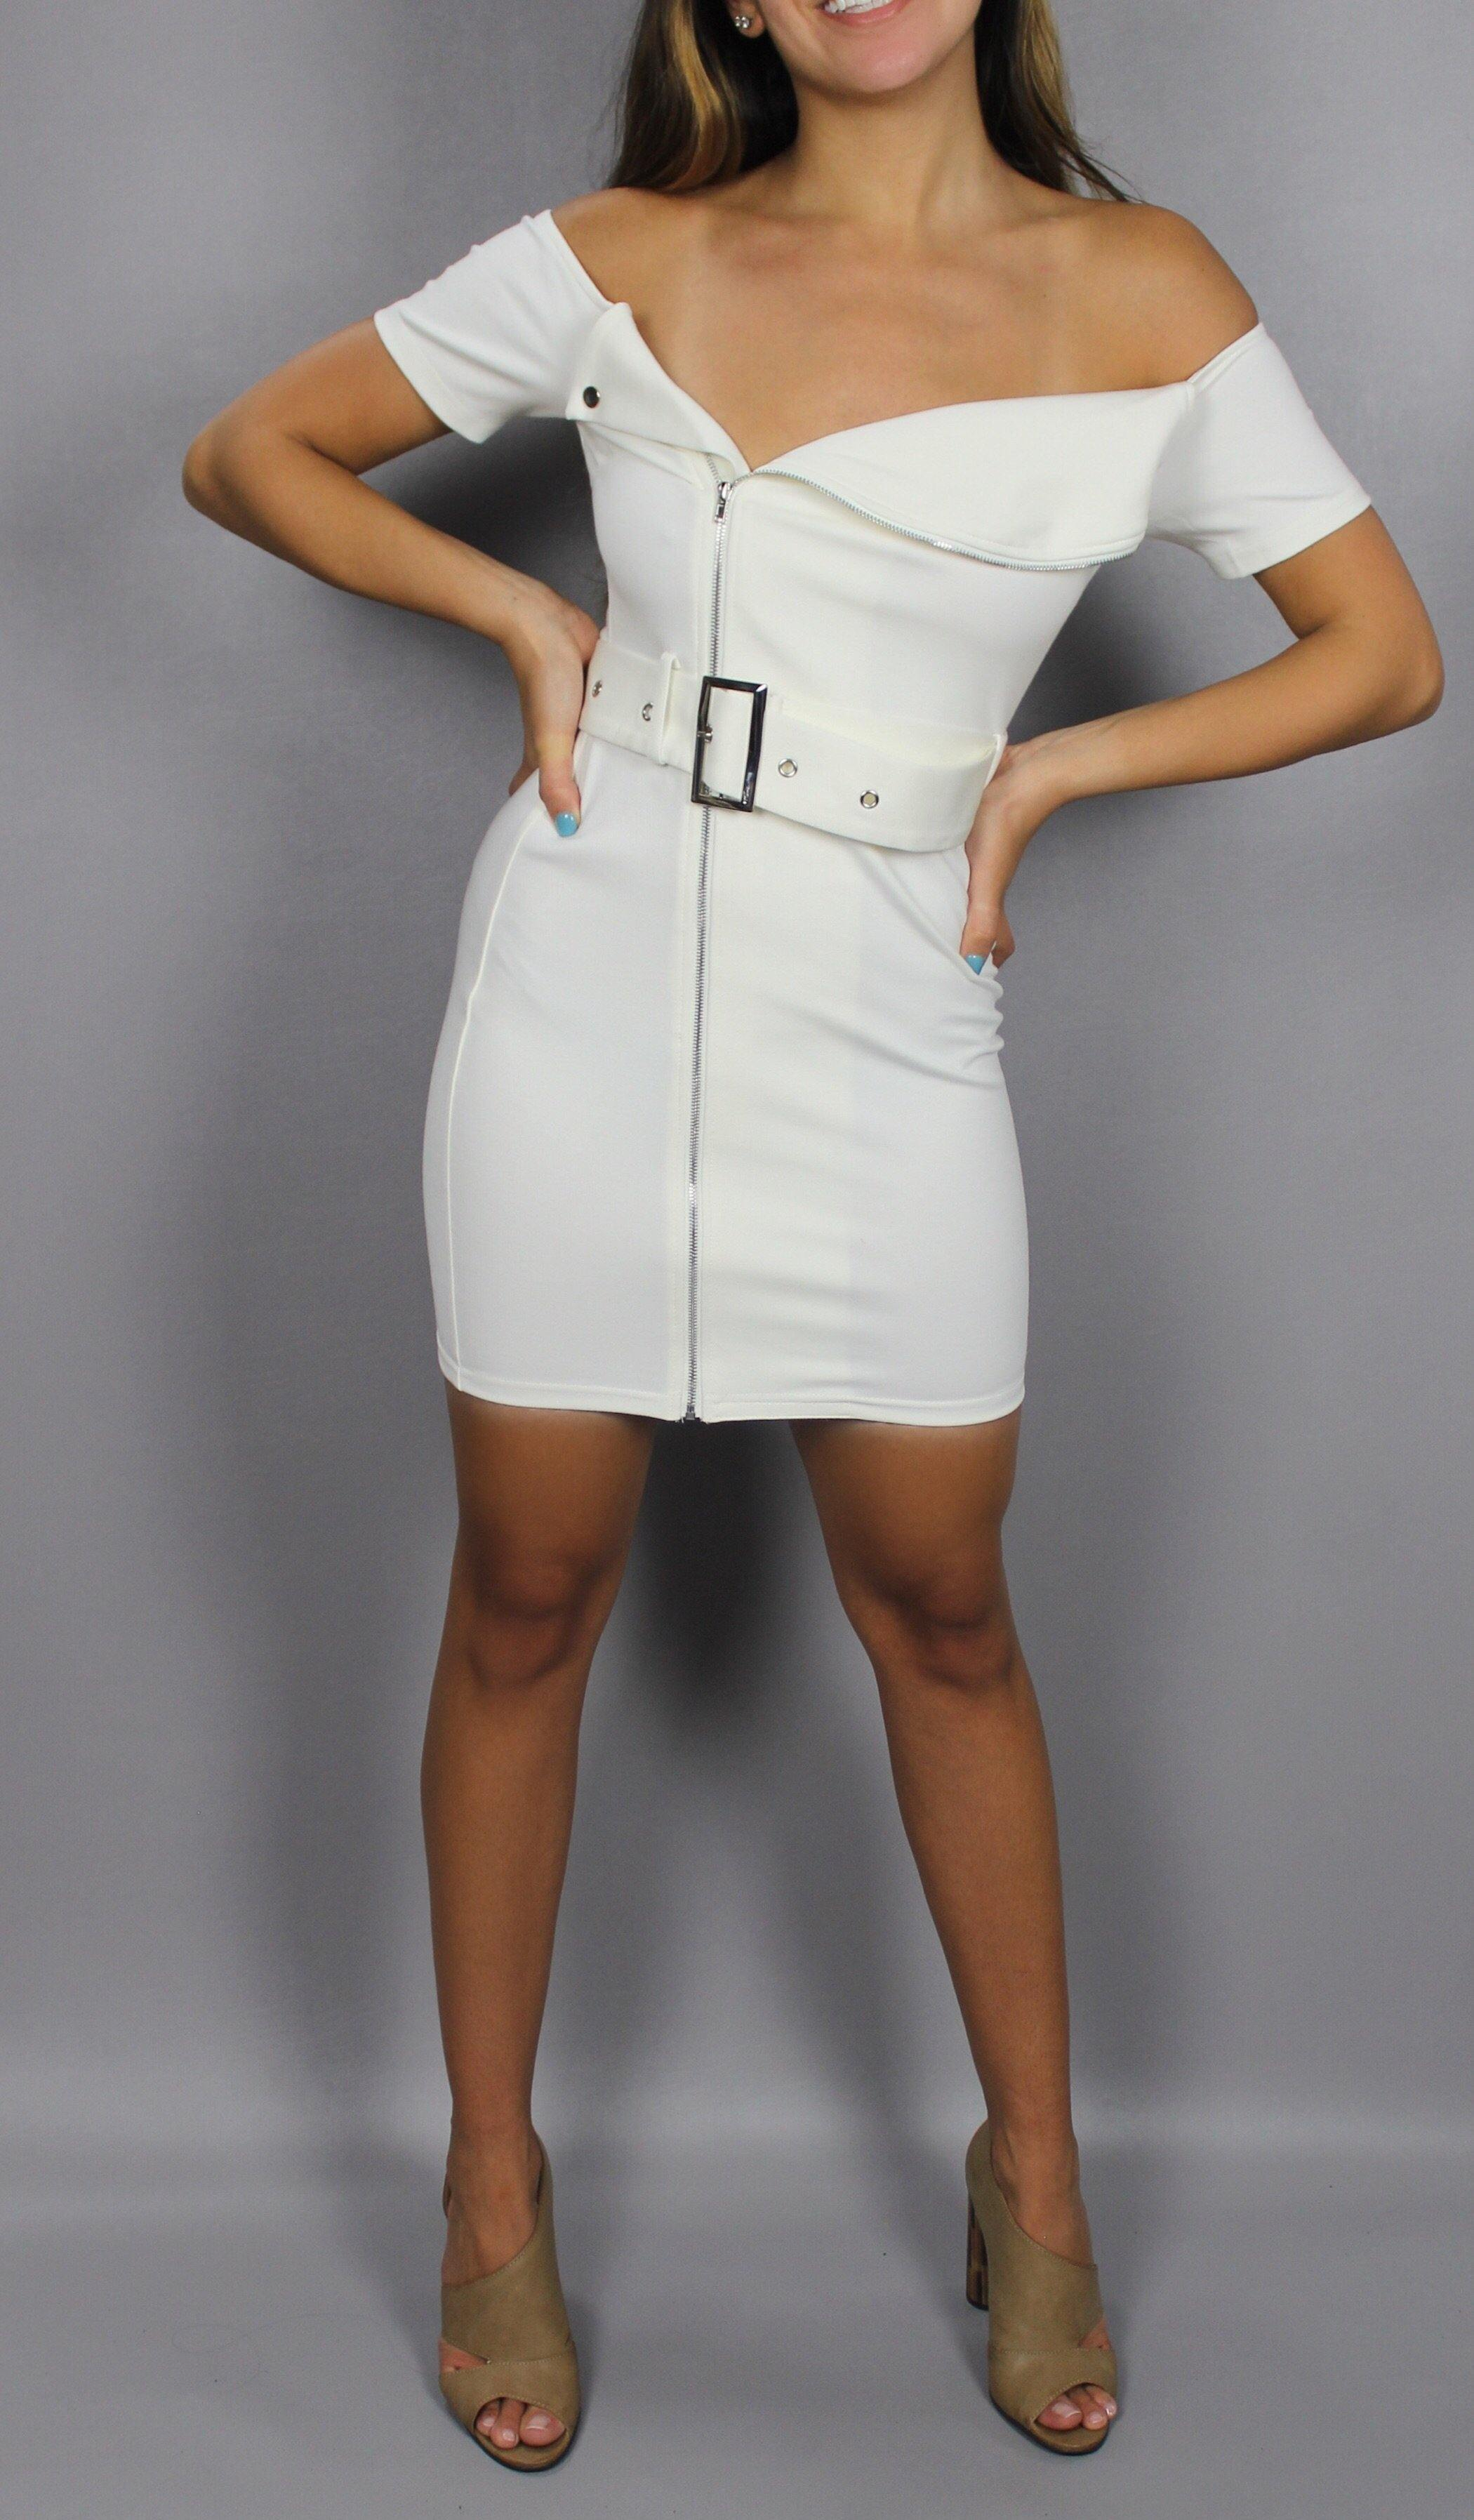 CITY LIGHTS BELTED DRESS